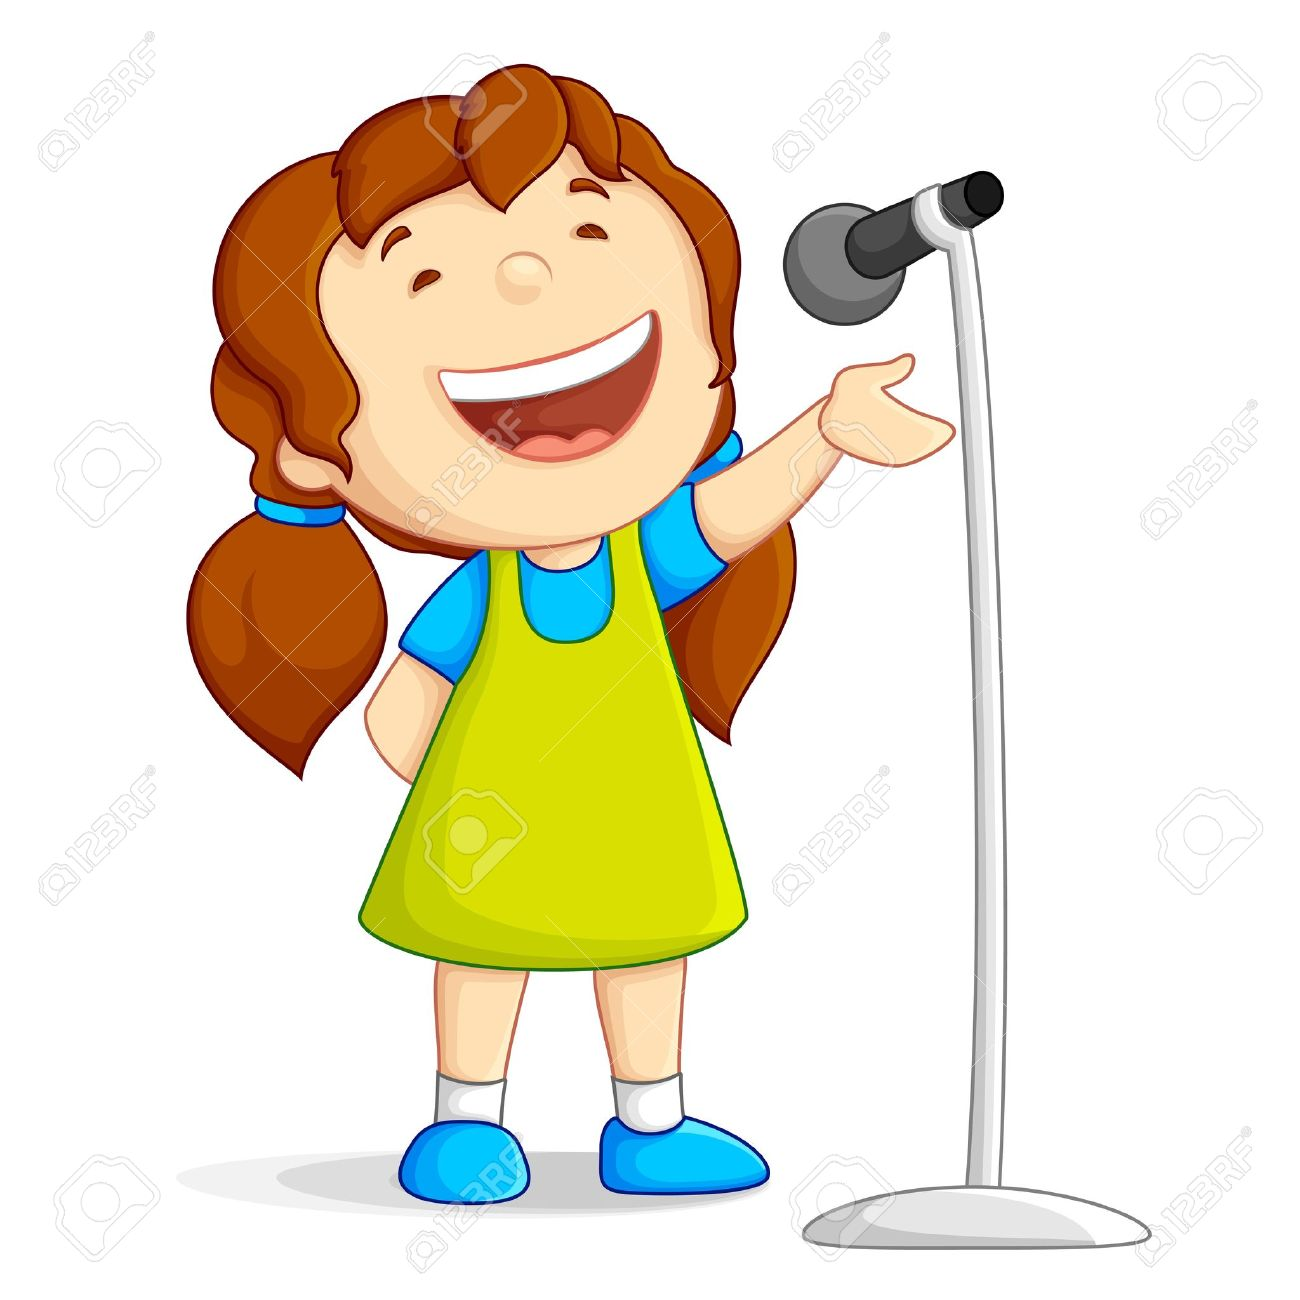 singing girl royalty free cliparts vectors and stock illustration rh 123rf com singing clip art singers singing clip art free